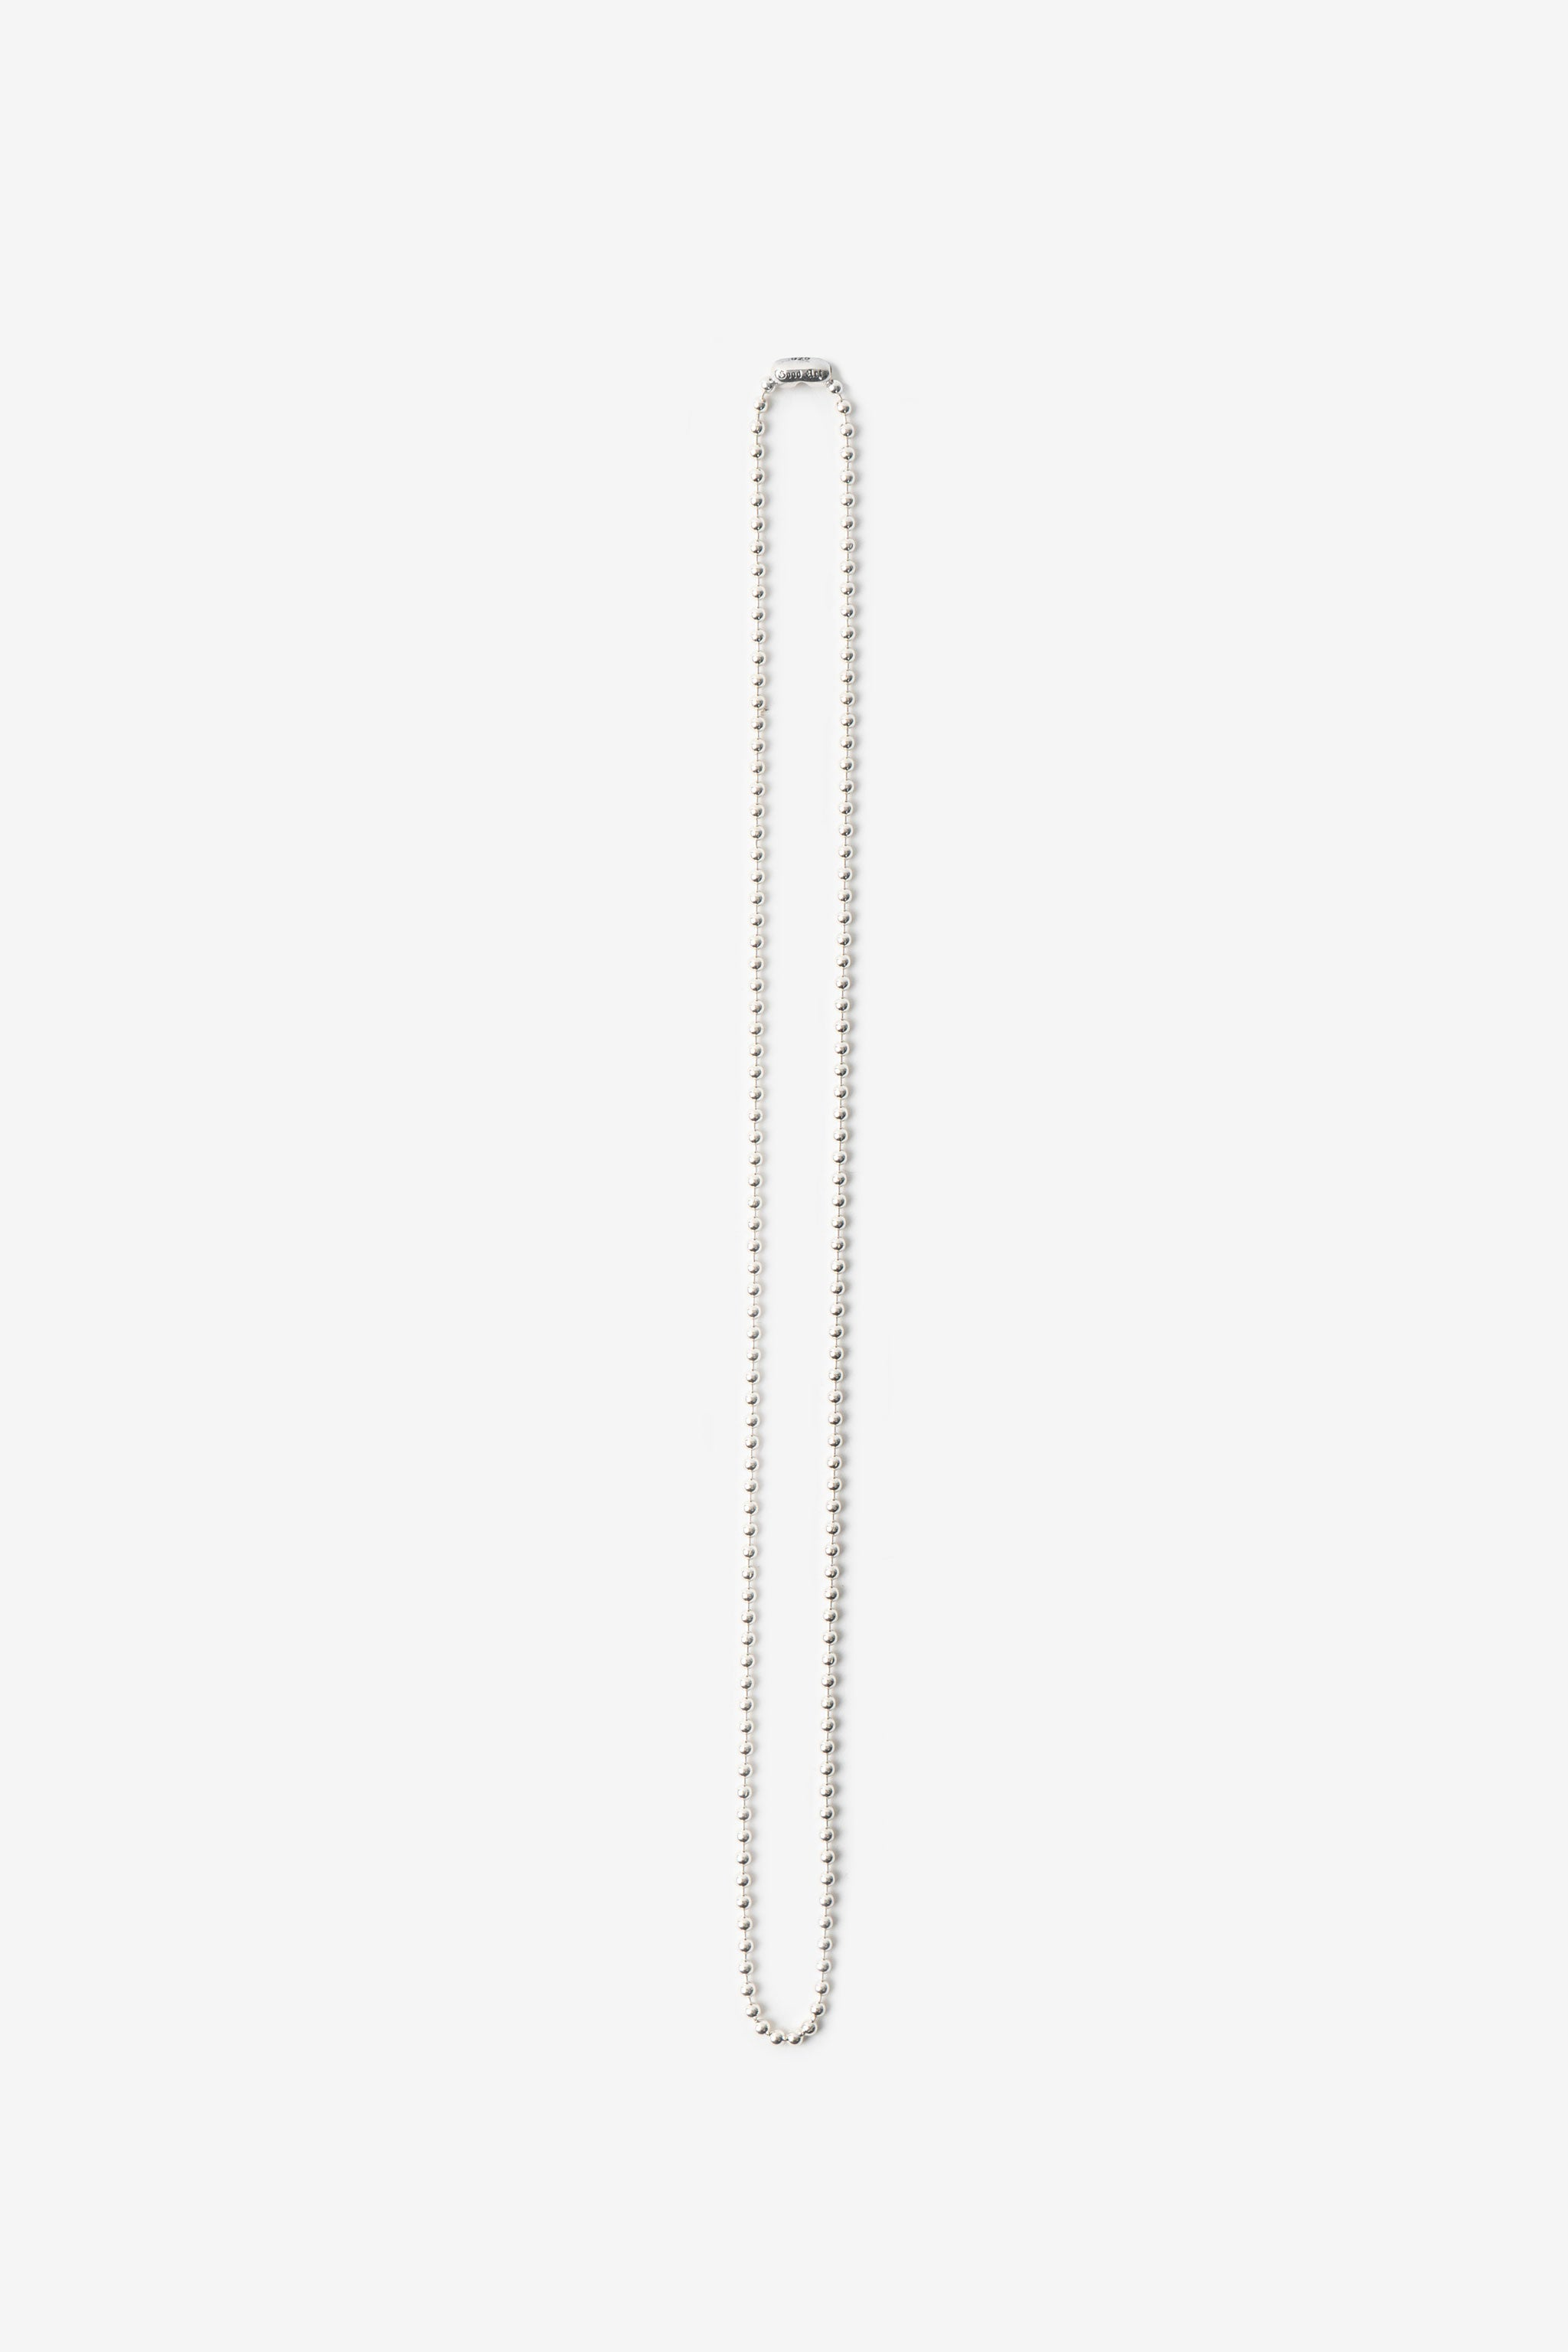 Good Art Hlywd for Goodfight MINI Ball Chain Necklace